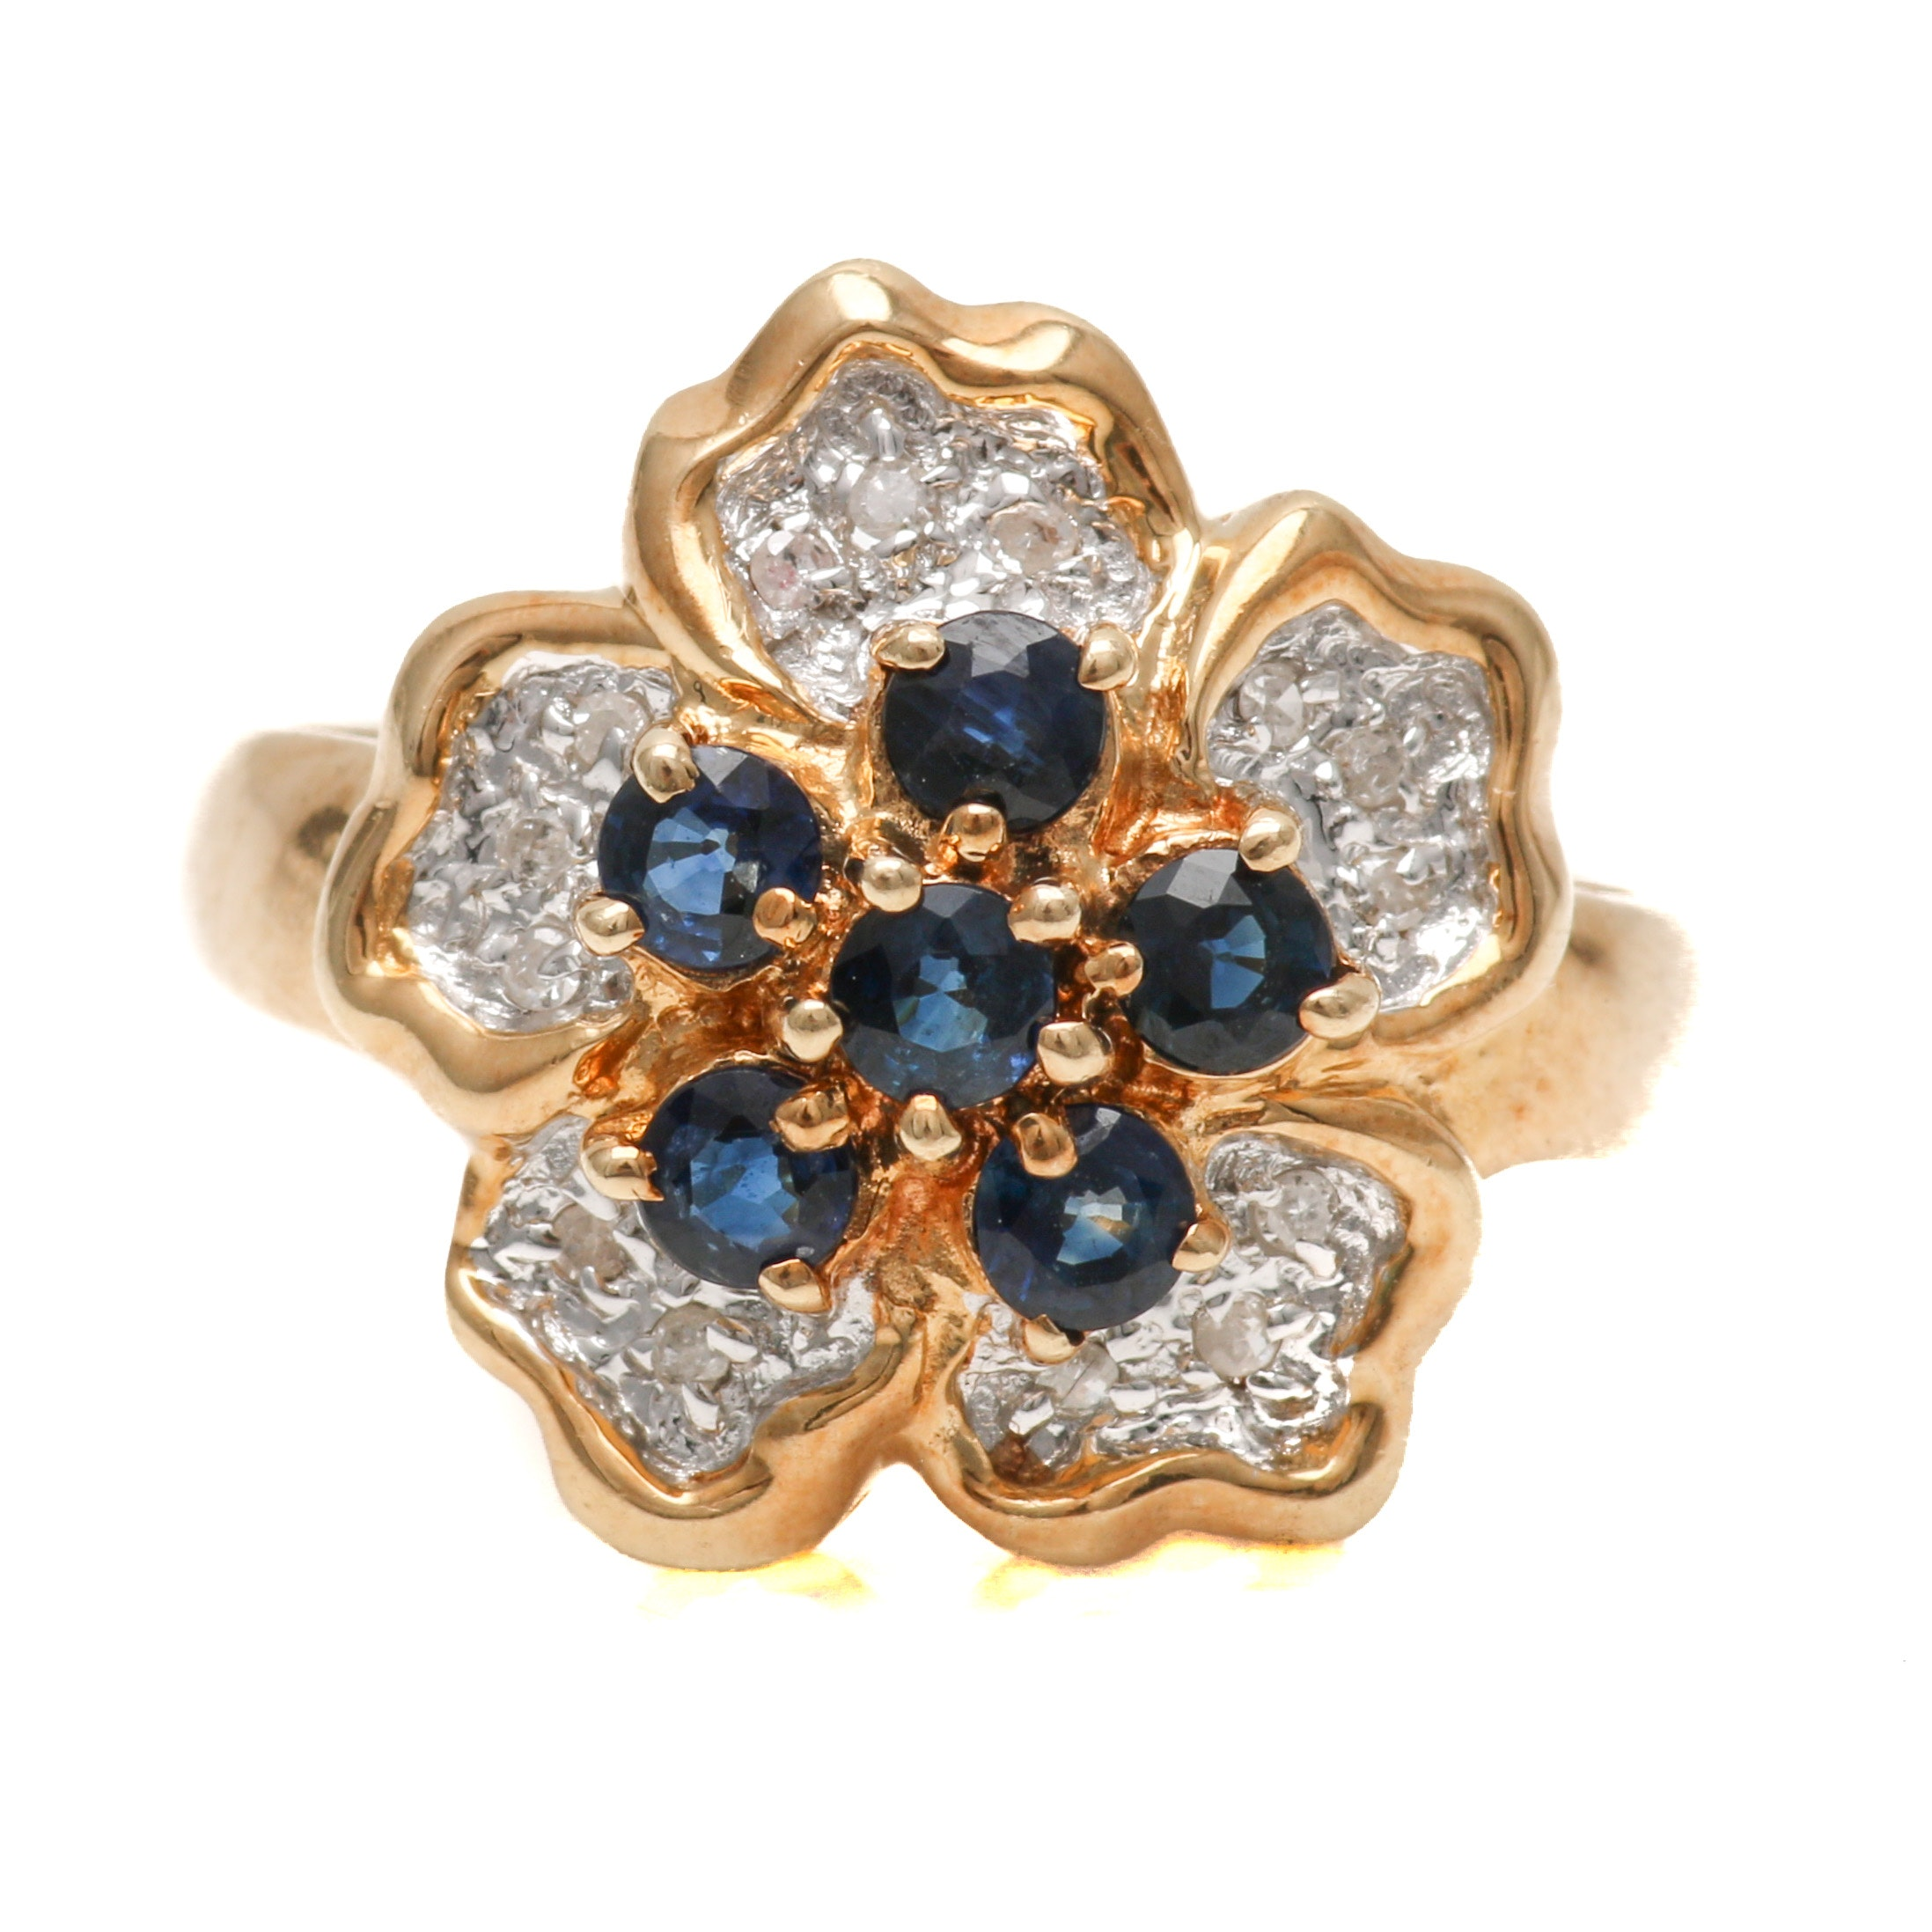 10K Yellow Gold Sapphire and Diamond Floral Ring